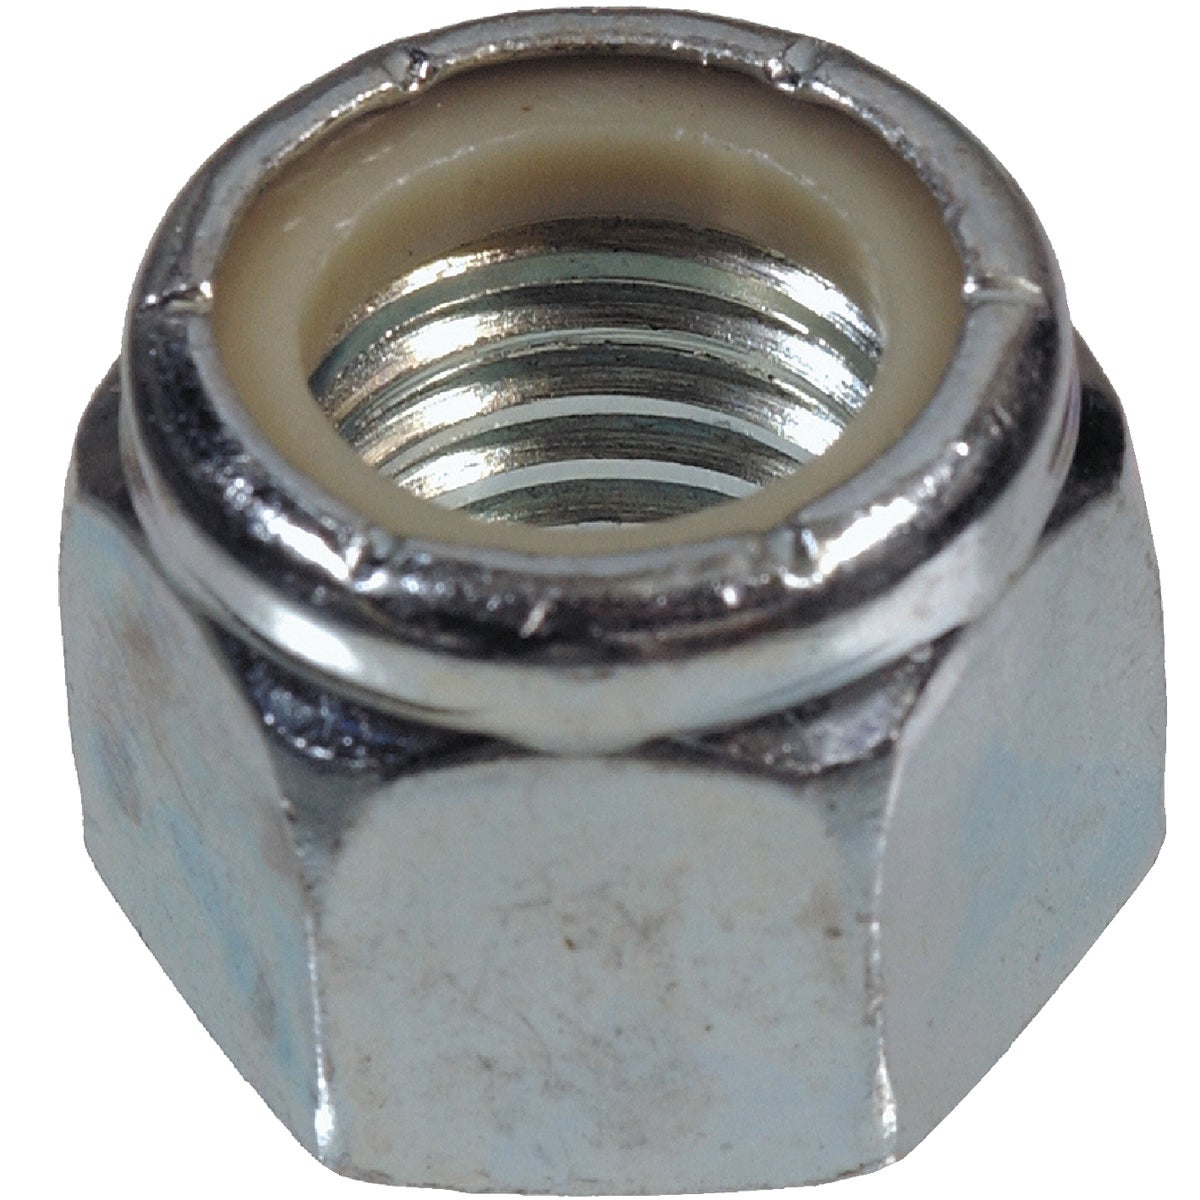 5/8-11 NYLON LOCK NUT - 180165 by Hillman Fastener